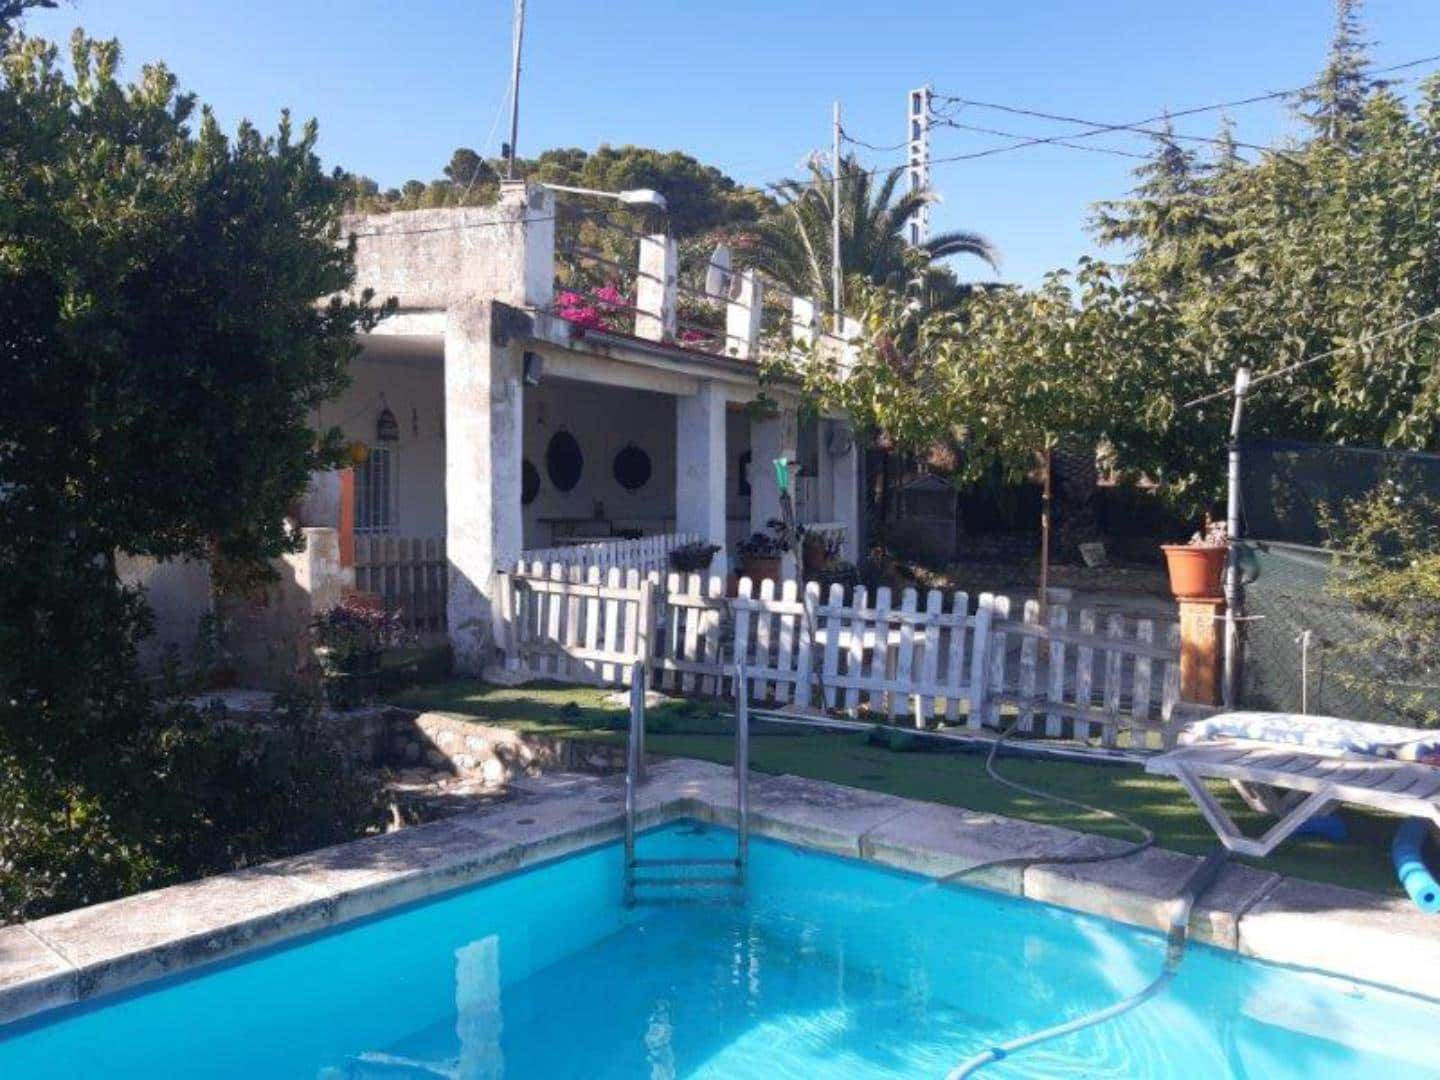 4 bedroom Villa for sale in Ontinyent with pool garage - € 70,000 (Ref: 5652421)